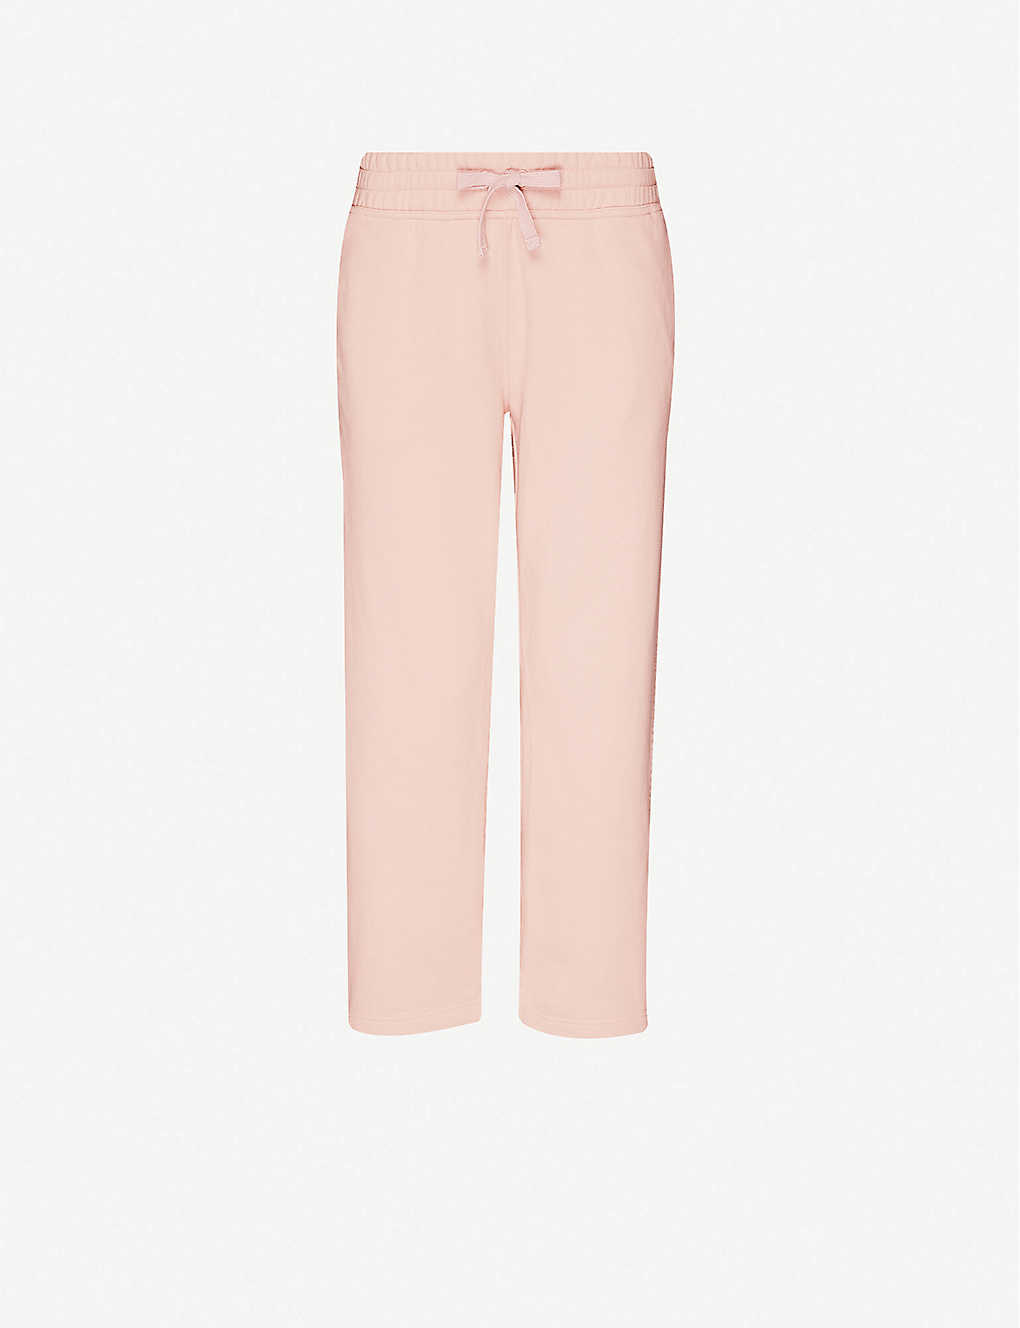 ADIDAS BY STELLA MCCARTNEY: Essentials straight high-rise cotton-jersey jogging bottoms